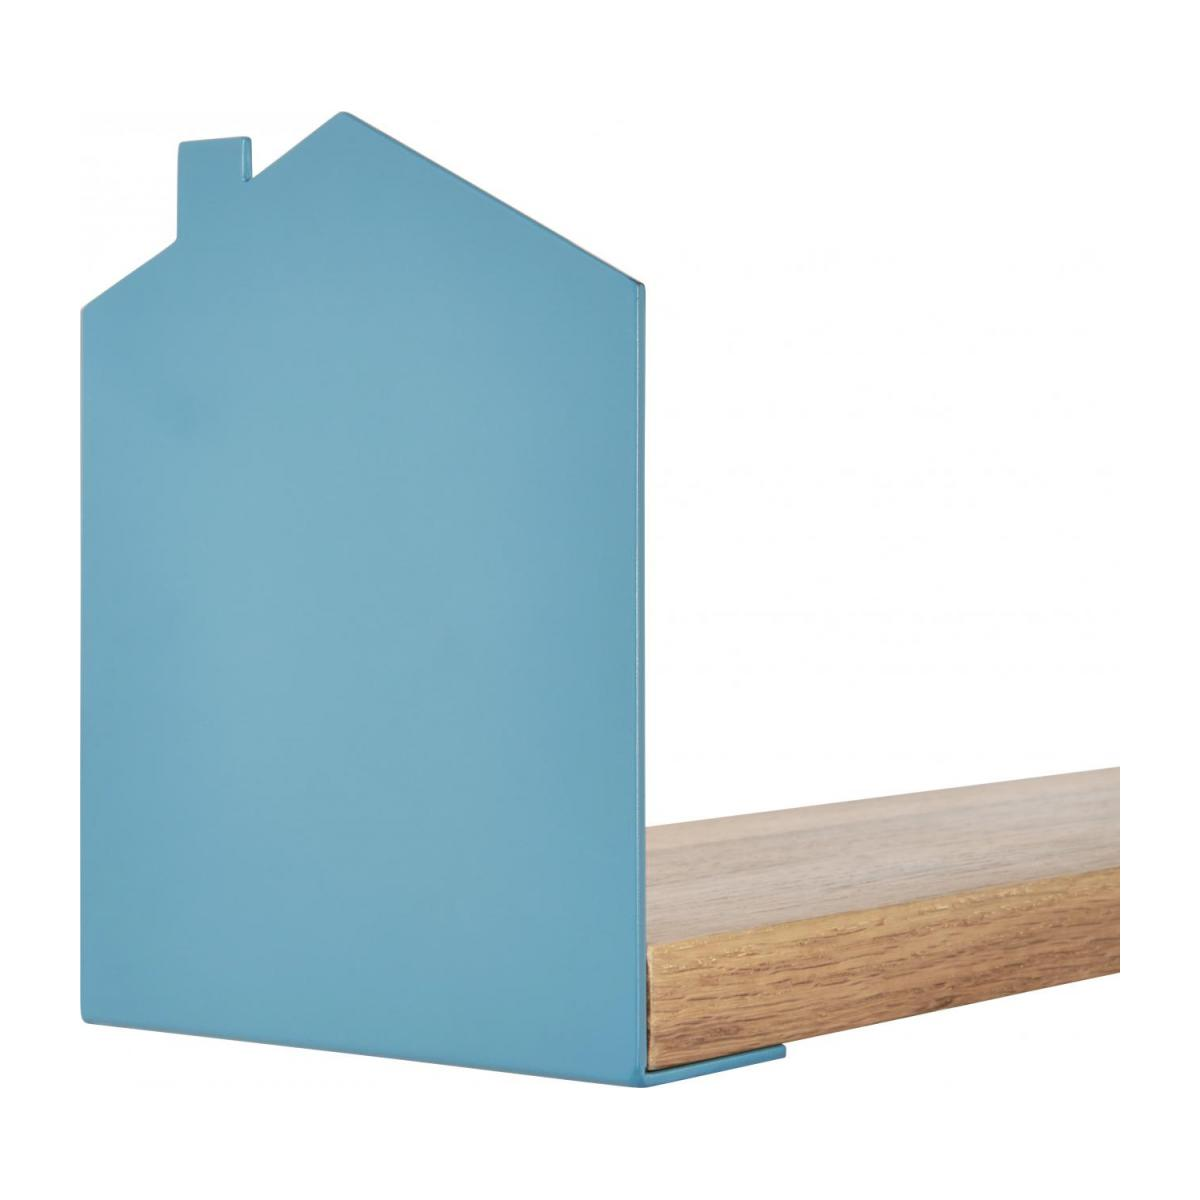 Shelf made of wood and metal, natural and grey-blue n°5